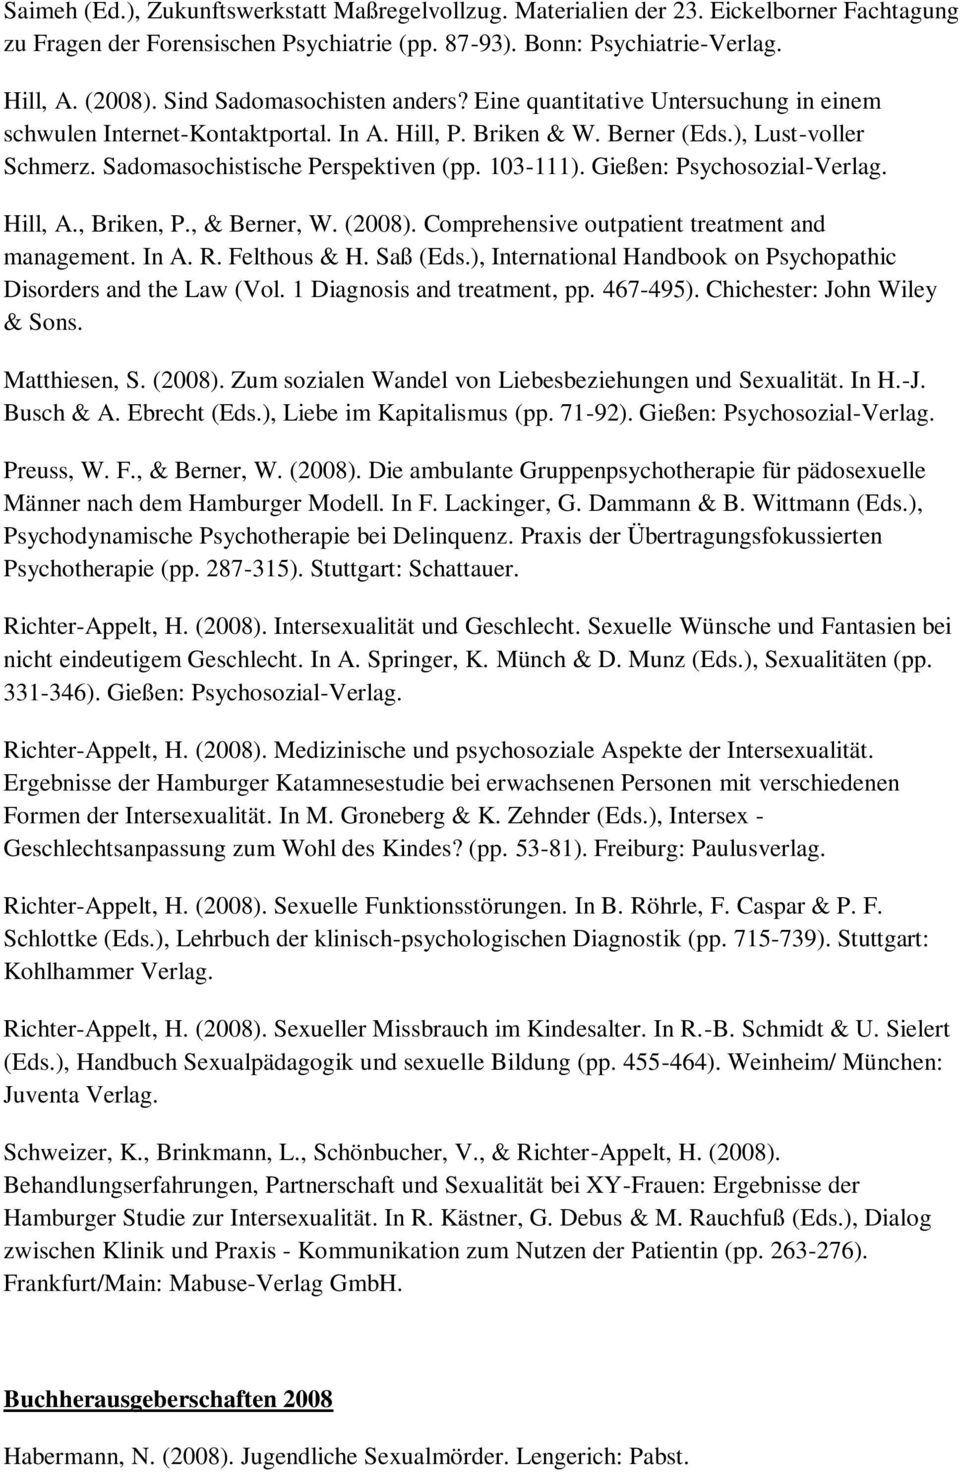 Sadomasochistische Perspektiven (pp. 103-111). Gießen: Psychosozial-Verlag. Hill, A., Briken, P., & Berner, W. (2008). Comprehensive outpatient treatment and management. In A. R. Felthous & H.